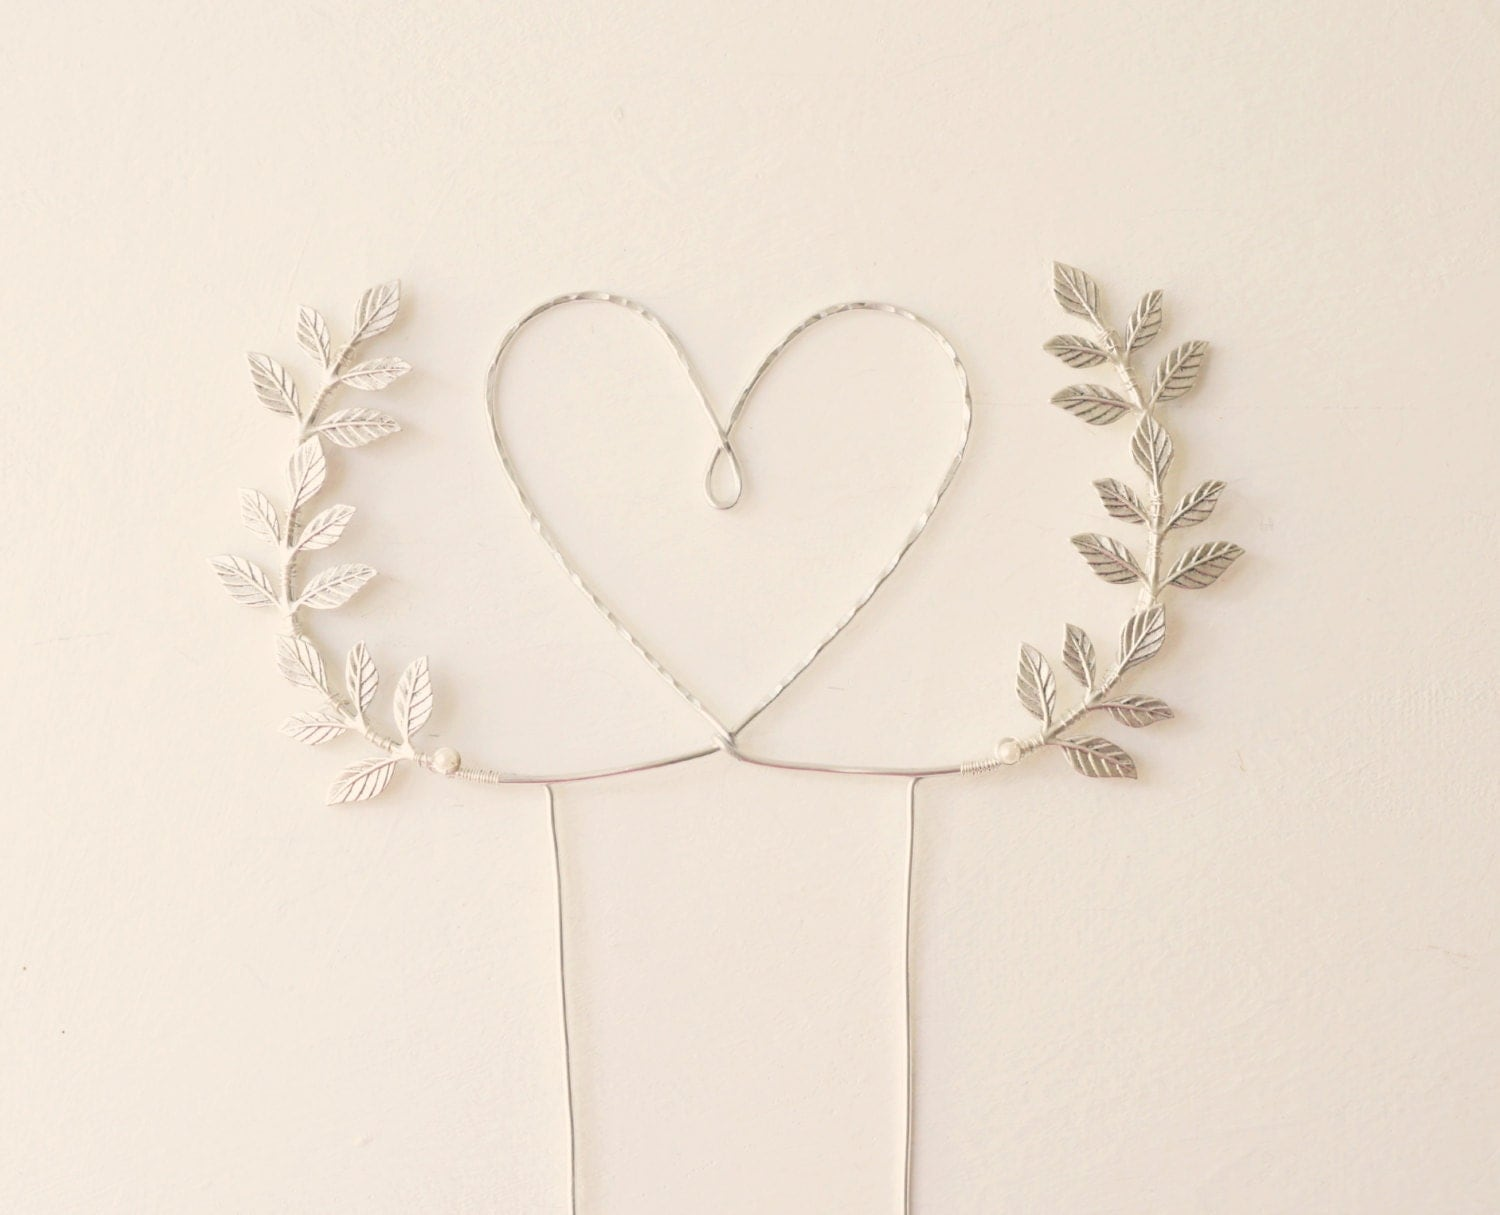 Silver heart wedding cake topper Heart and leaves cake